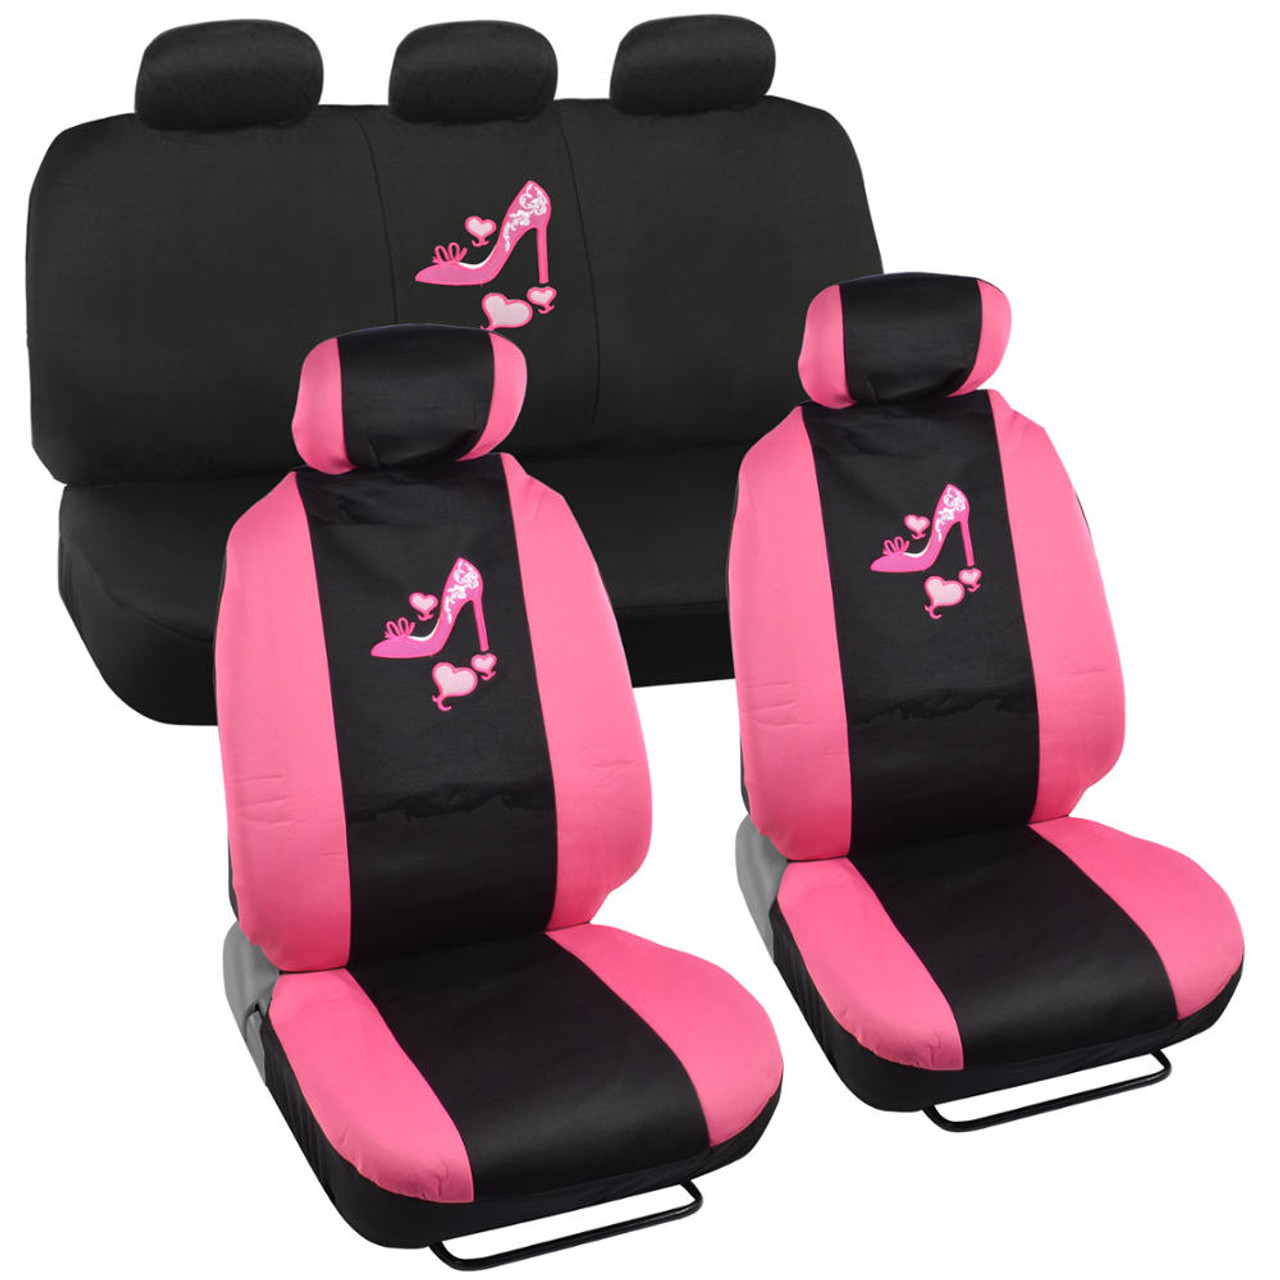 Heel on Hearts Girly 2-Tone PolyCloth Car Seat Cover Set for Front ...